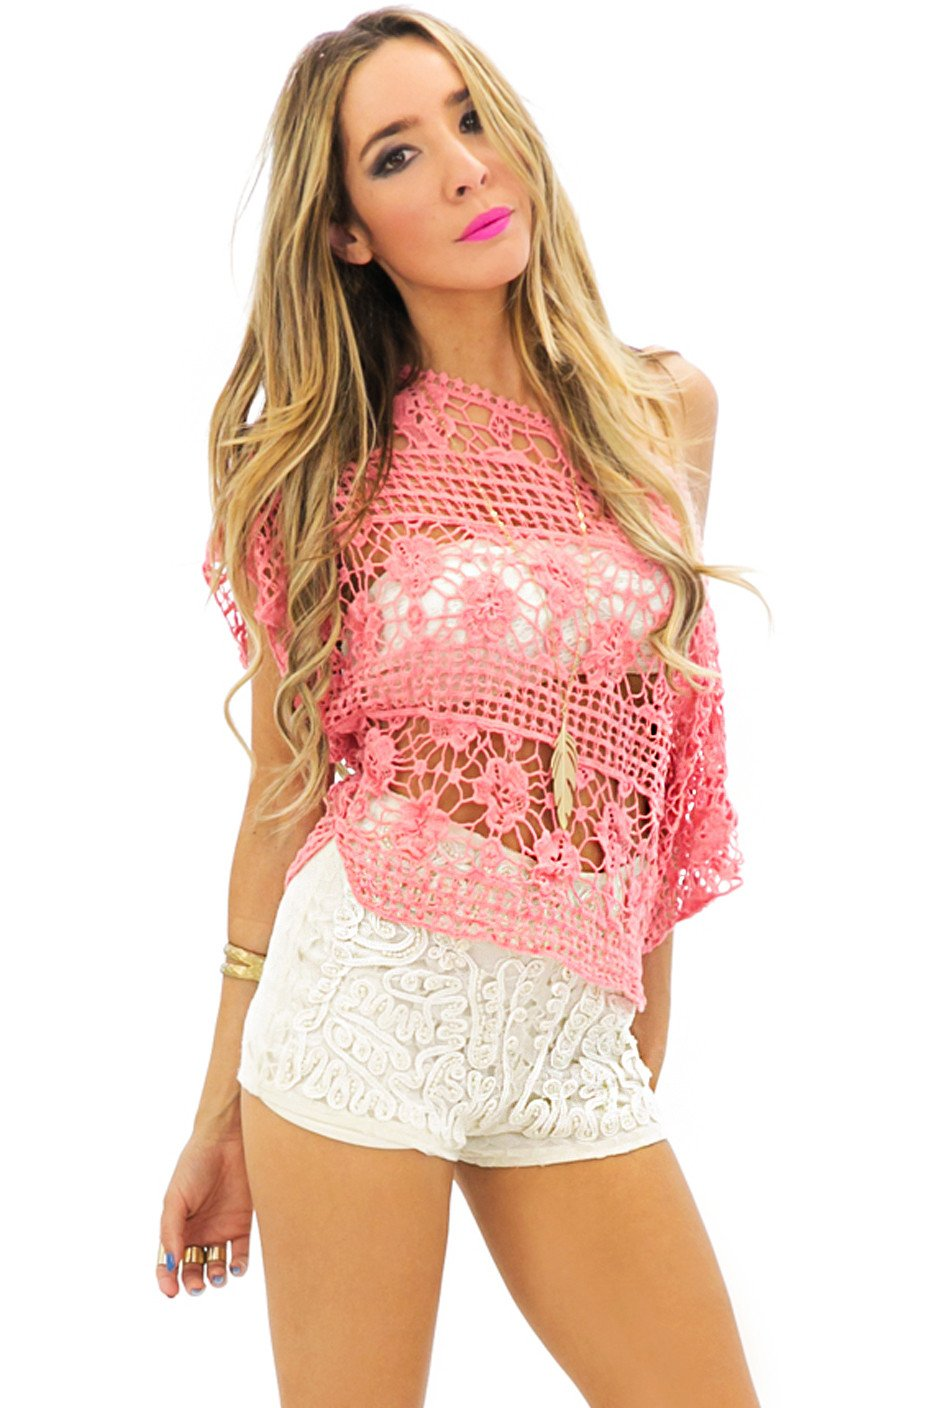 ARWEN NET CROCHET TOP - Peach - Haute & Rebellious